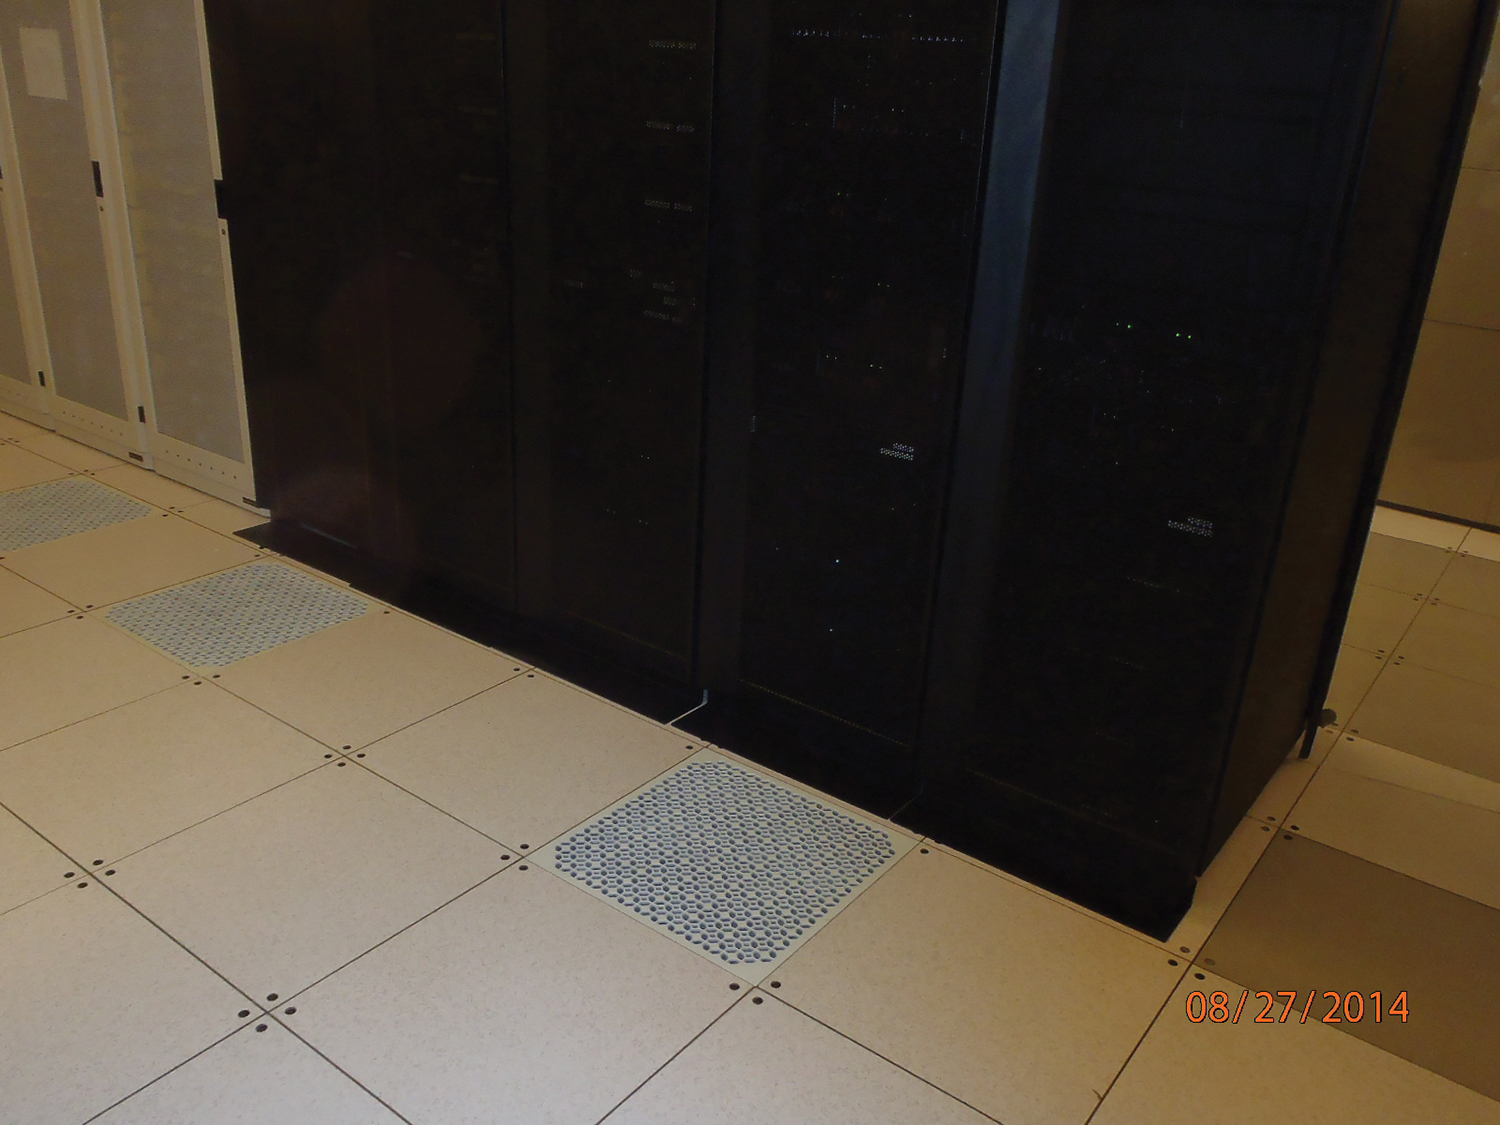 Perforated tile placement is key.